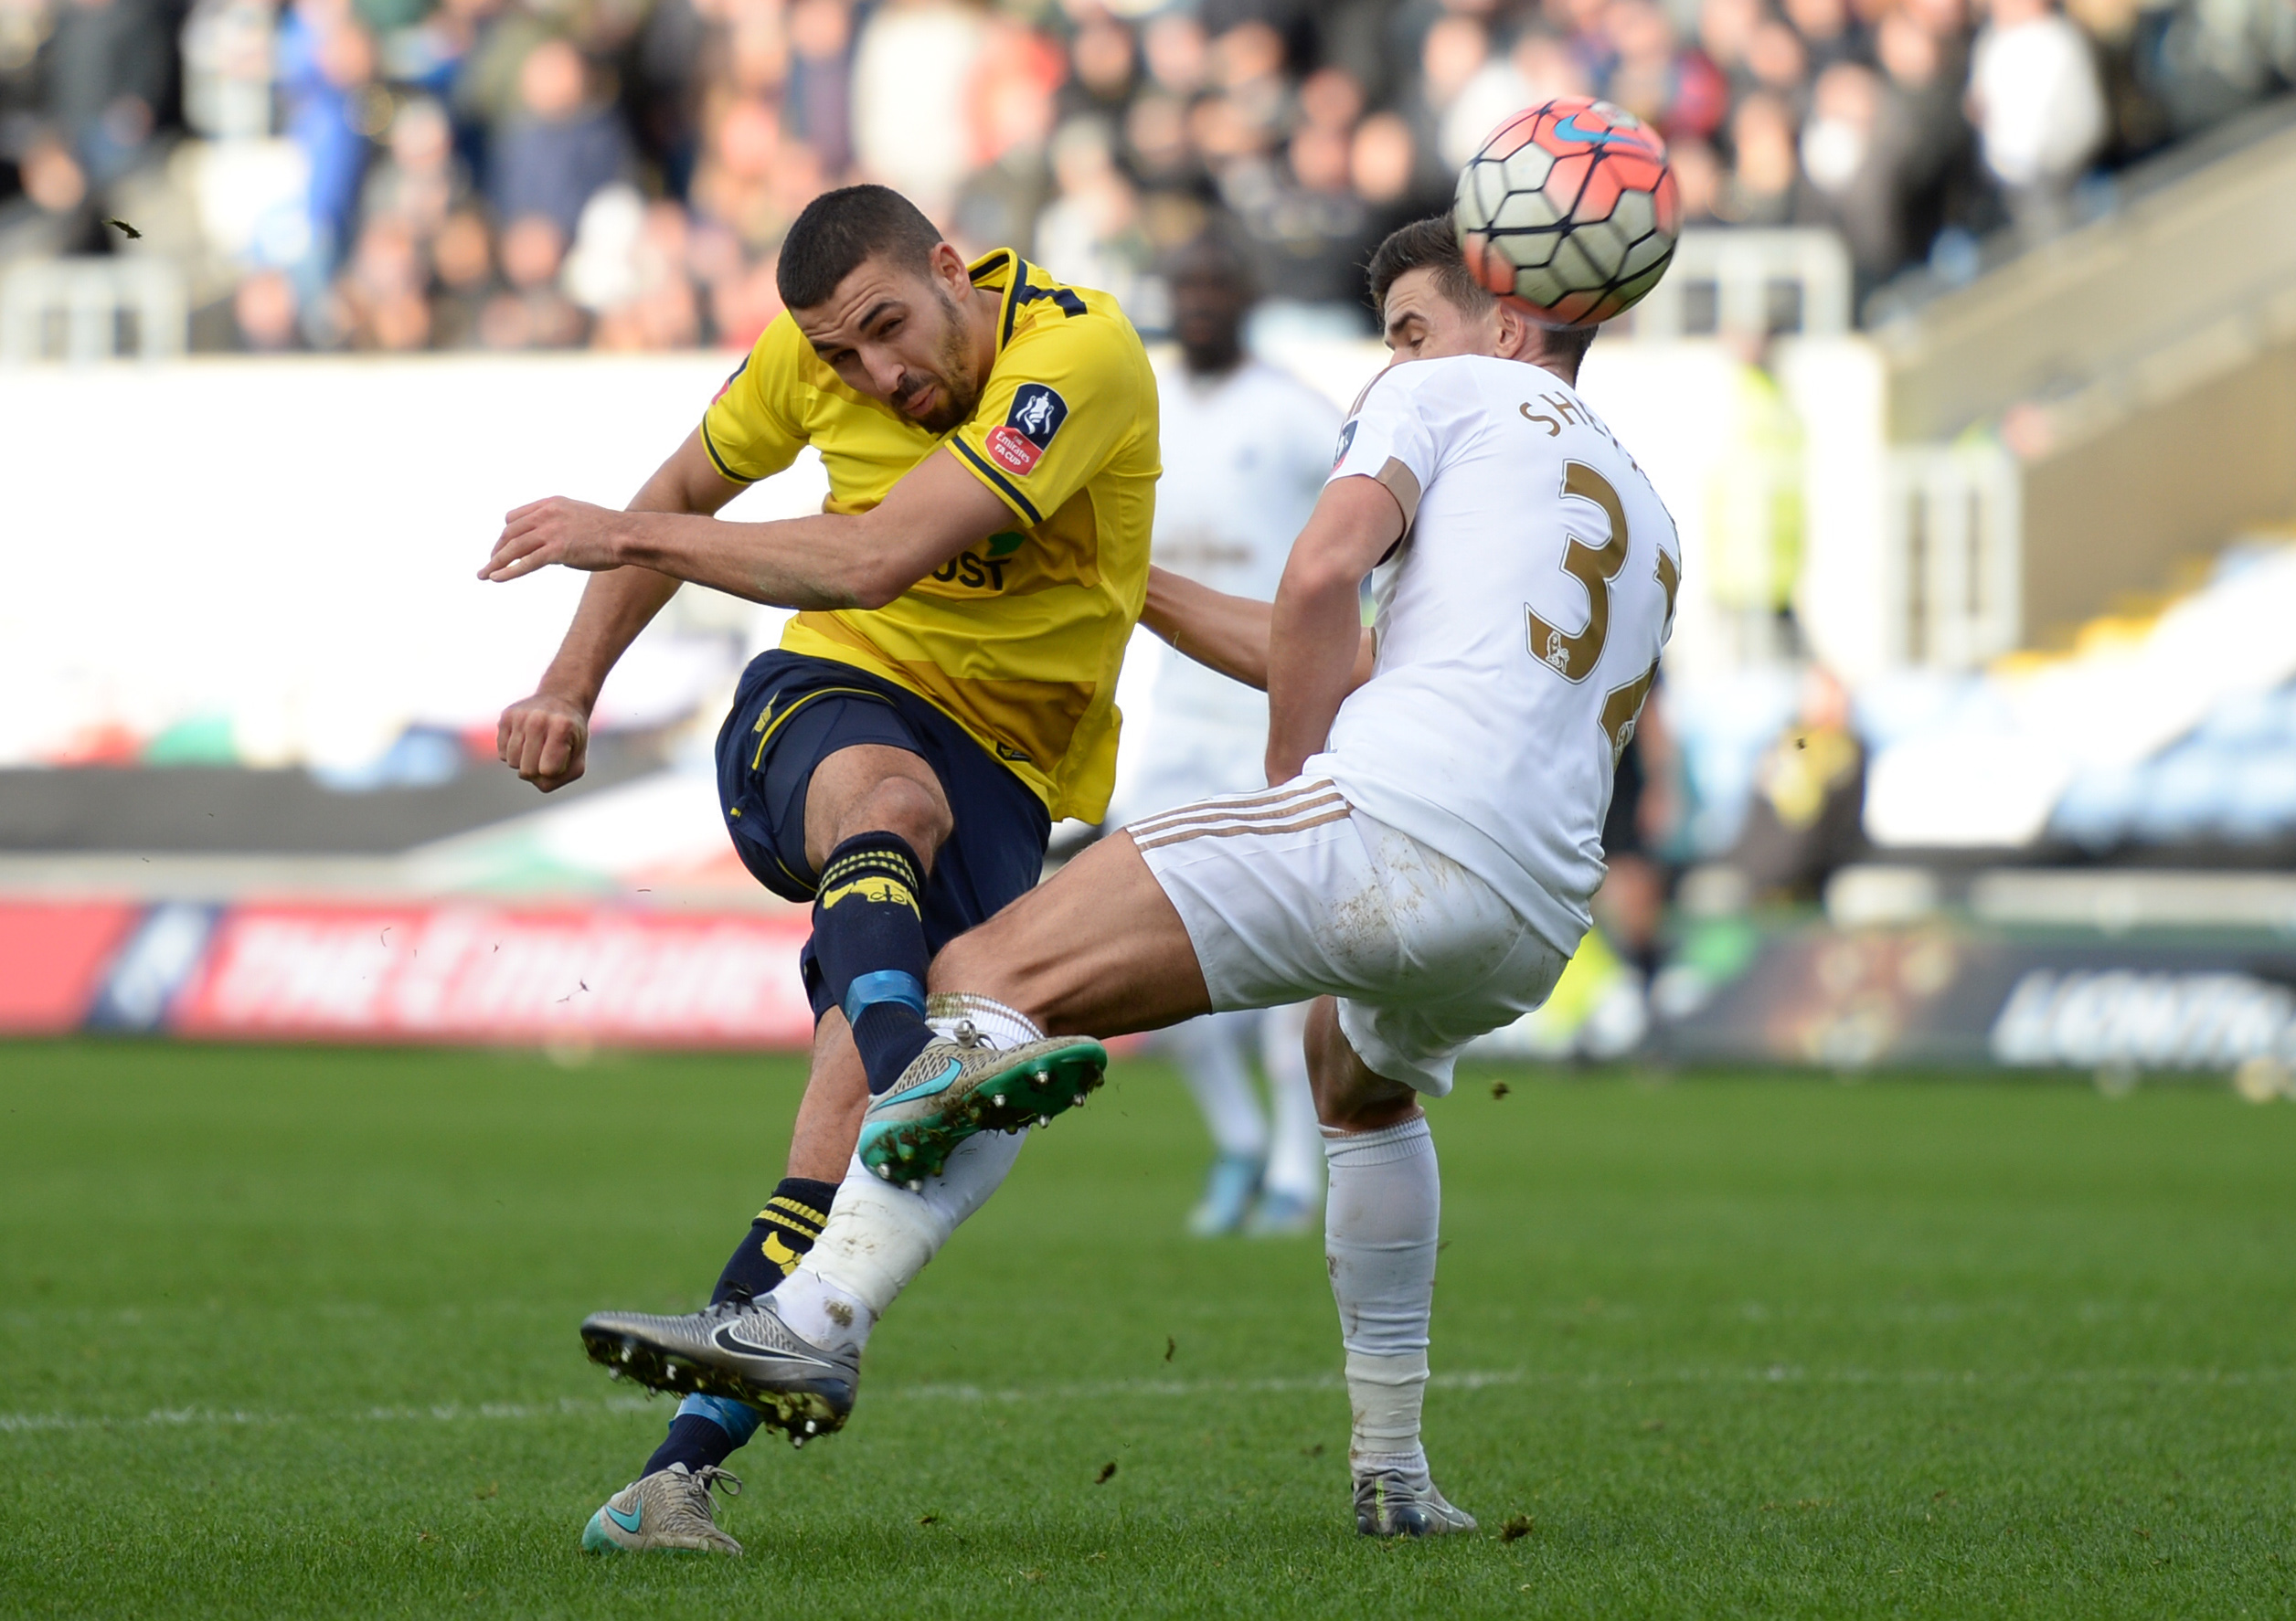 Oxford's Liam Sercombe shoots at goal during FA Cup against Swansea City on Sunday, 2016. Photo: Reuters